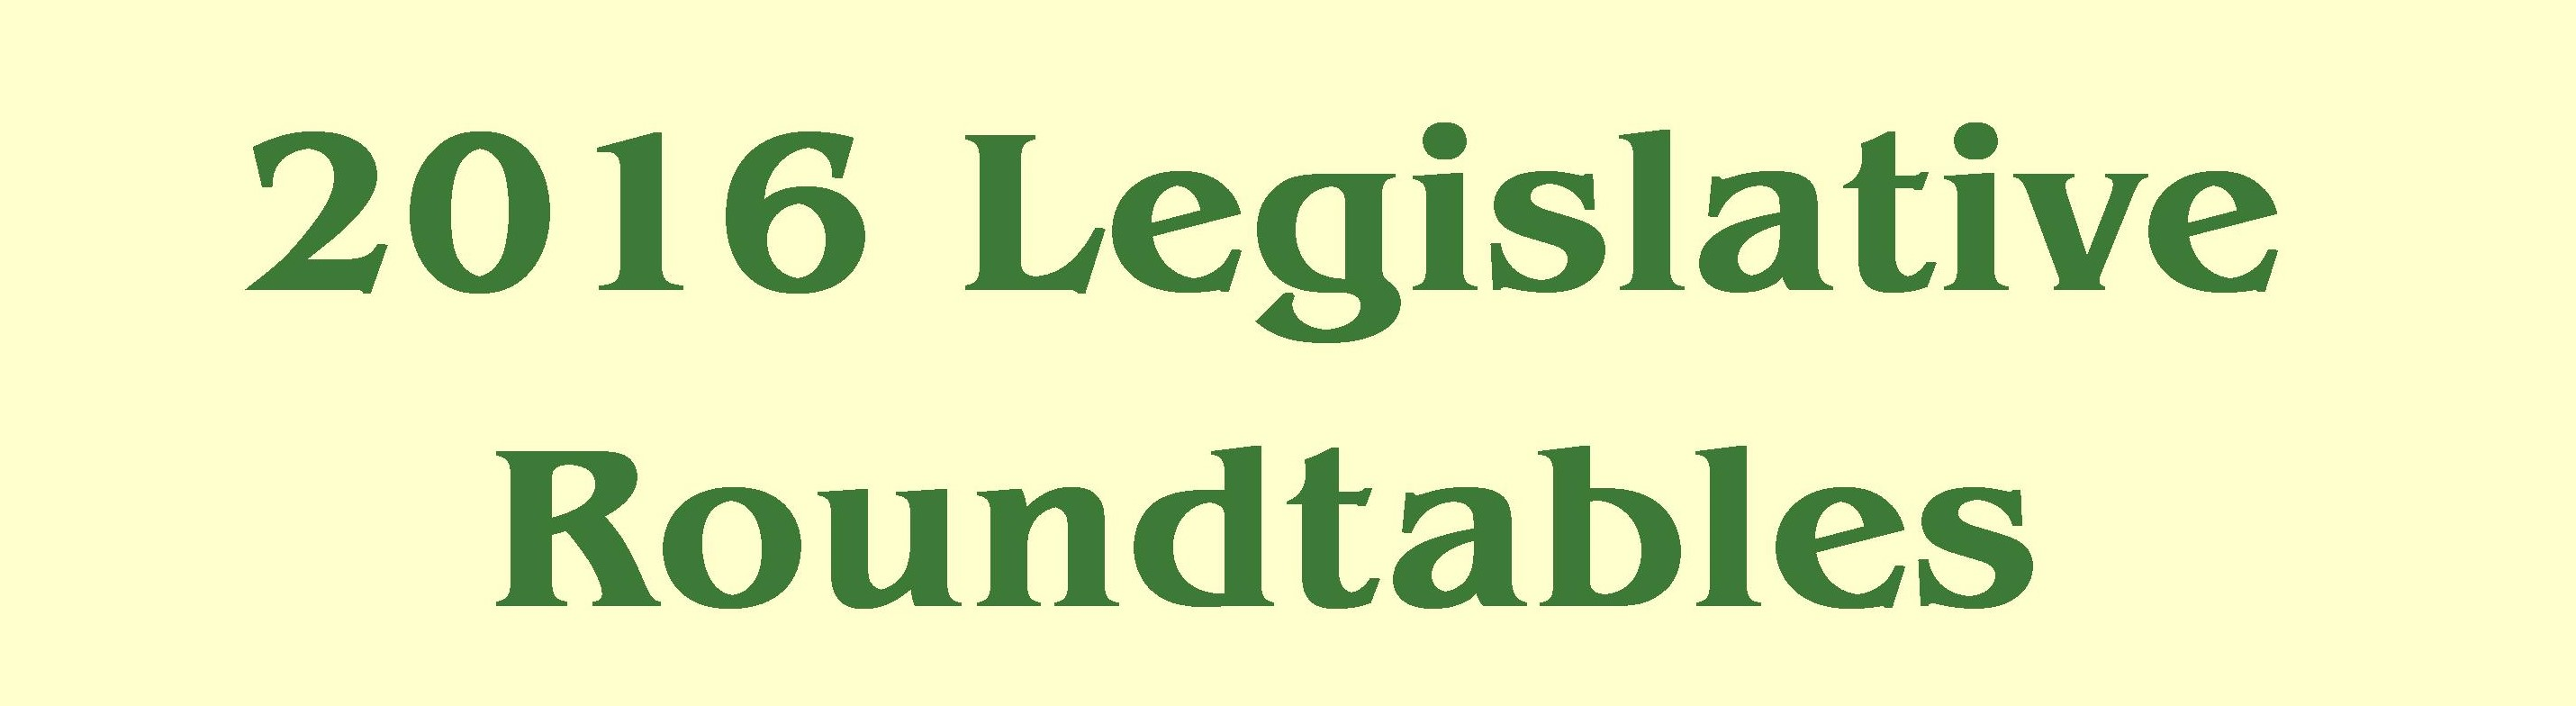 2016 Legislative Roundtable Breakfast - Lake George